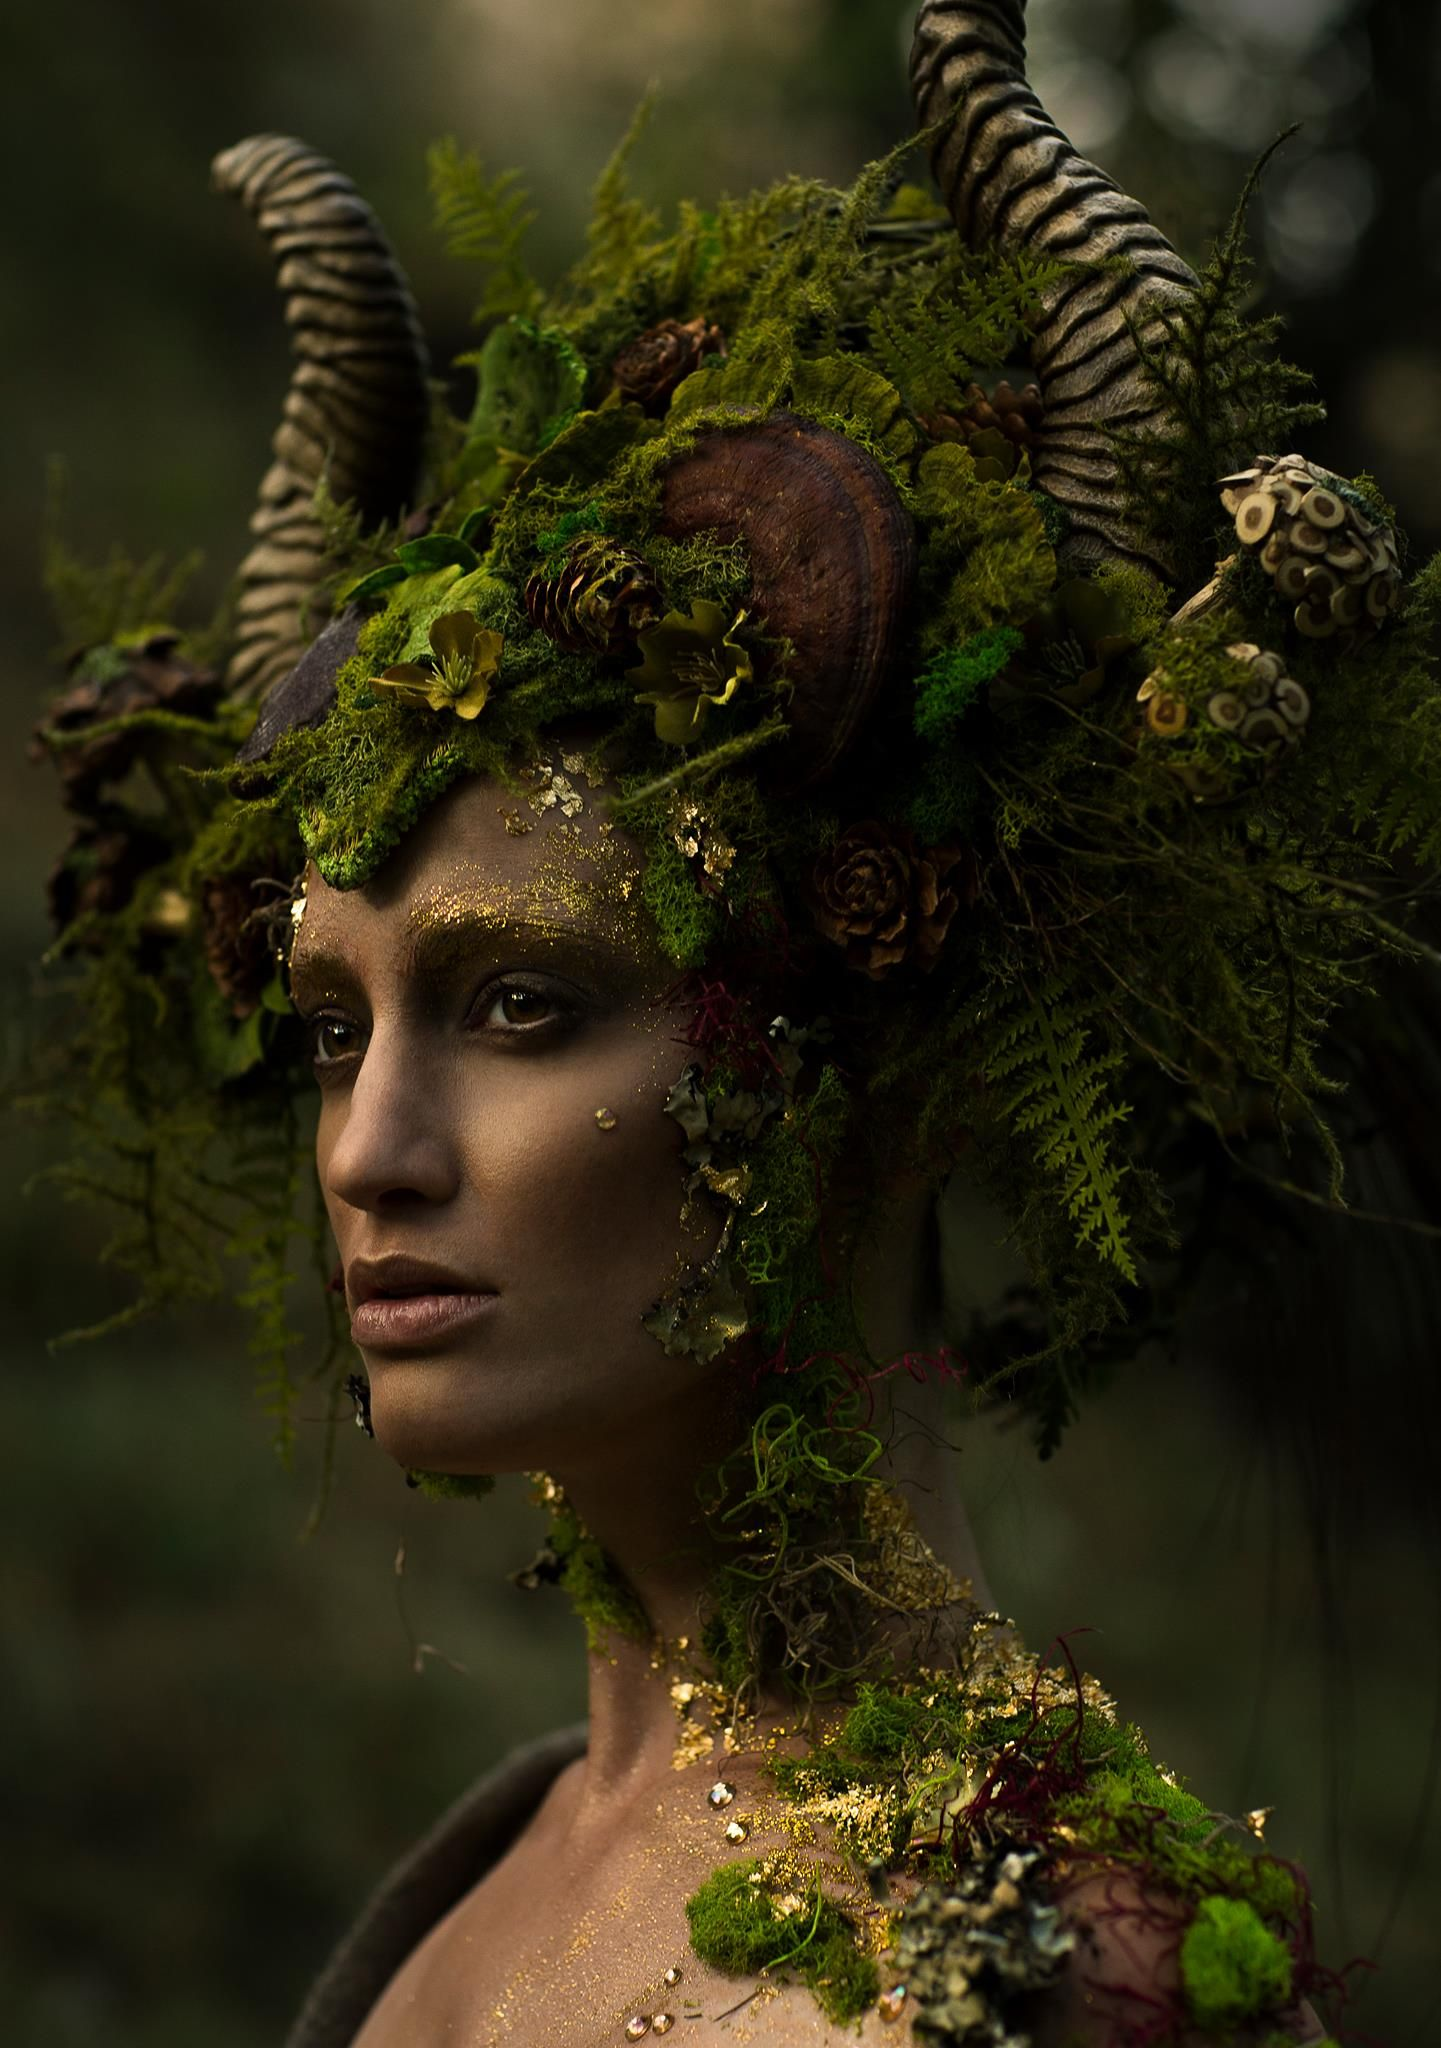 Spring is coming!  I have visions of faeries, nymphs and mother nature pieces dancing in my head. I will be stocking the shop with Spring delights very soon. etsy.com/shop/MissGDesignsShop  What new creatures would you like to see?   Photographer: Emily Teague Photography Headdress: Miss G Designs Model: Kelli Kickham Makeup: Mckenzie Gregg MUA Lighting Assistant: Christina Schellhous Horns: Faust & Company Masks